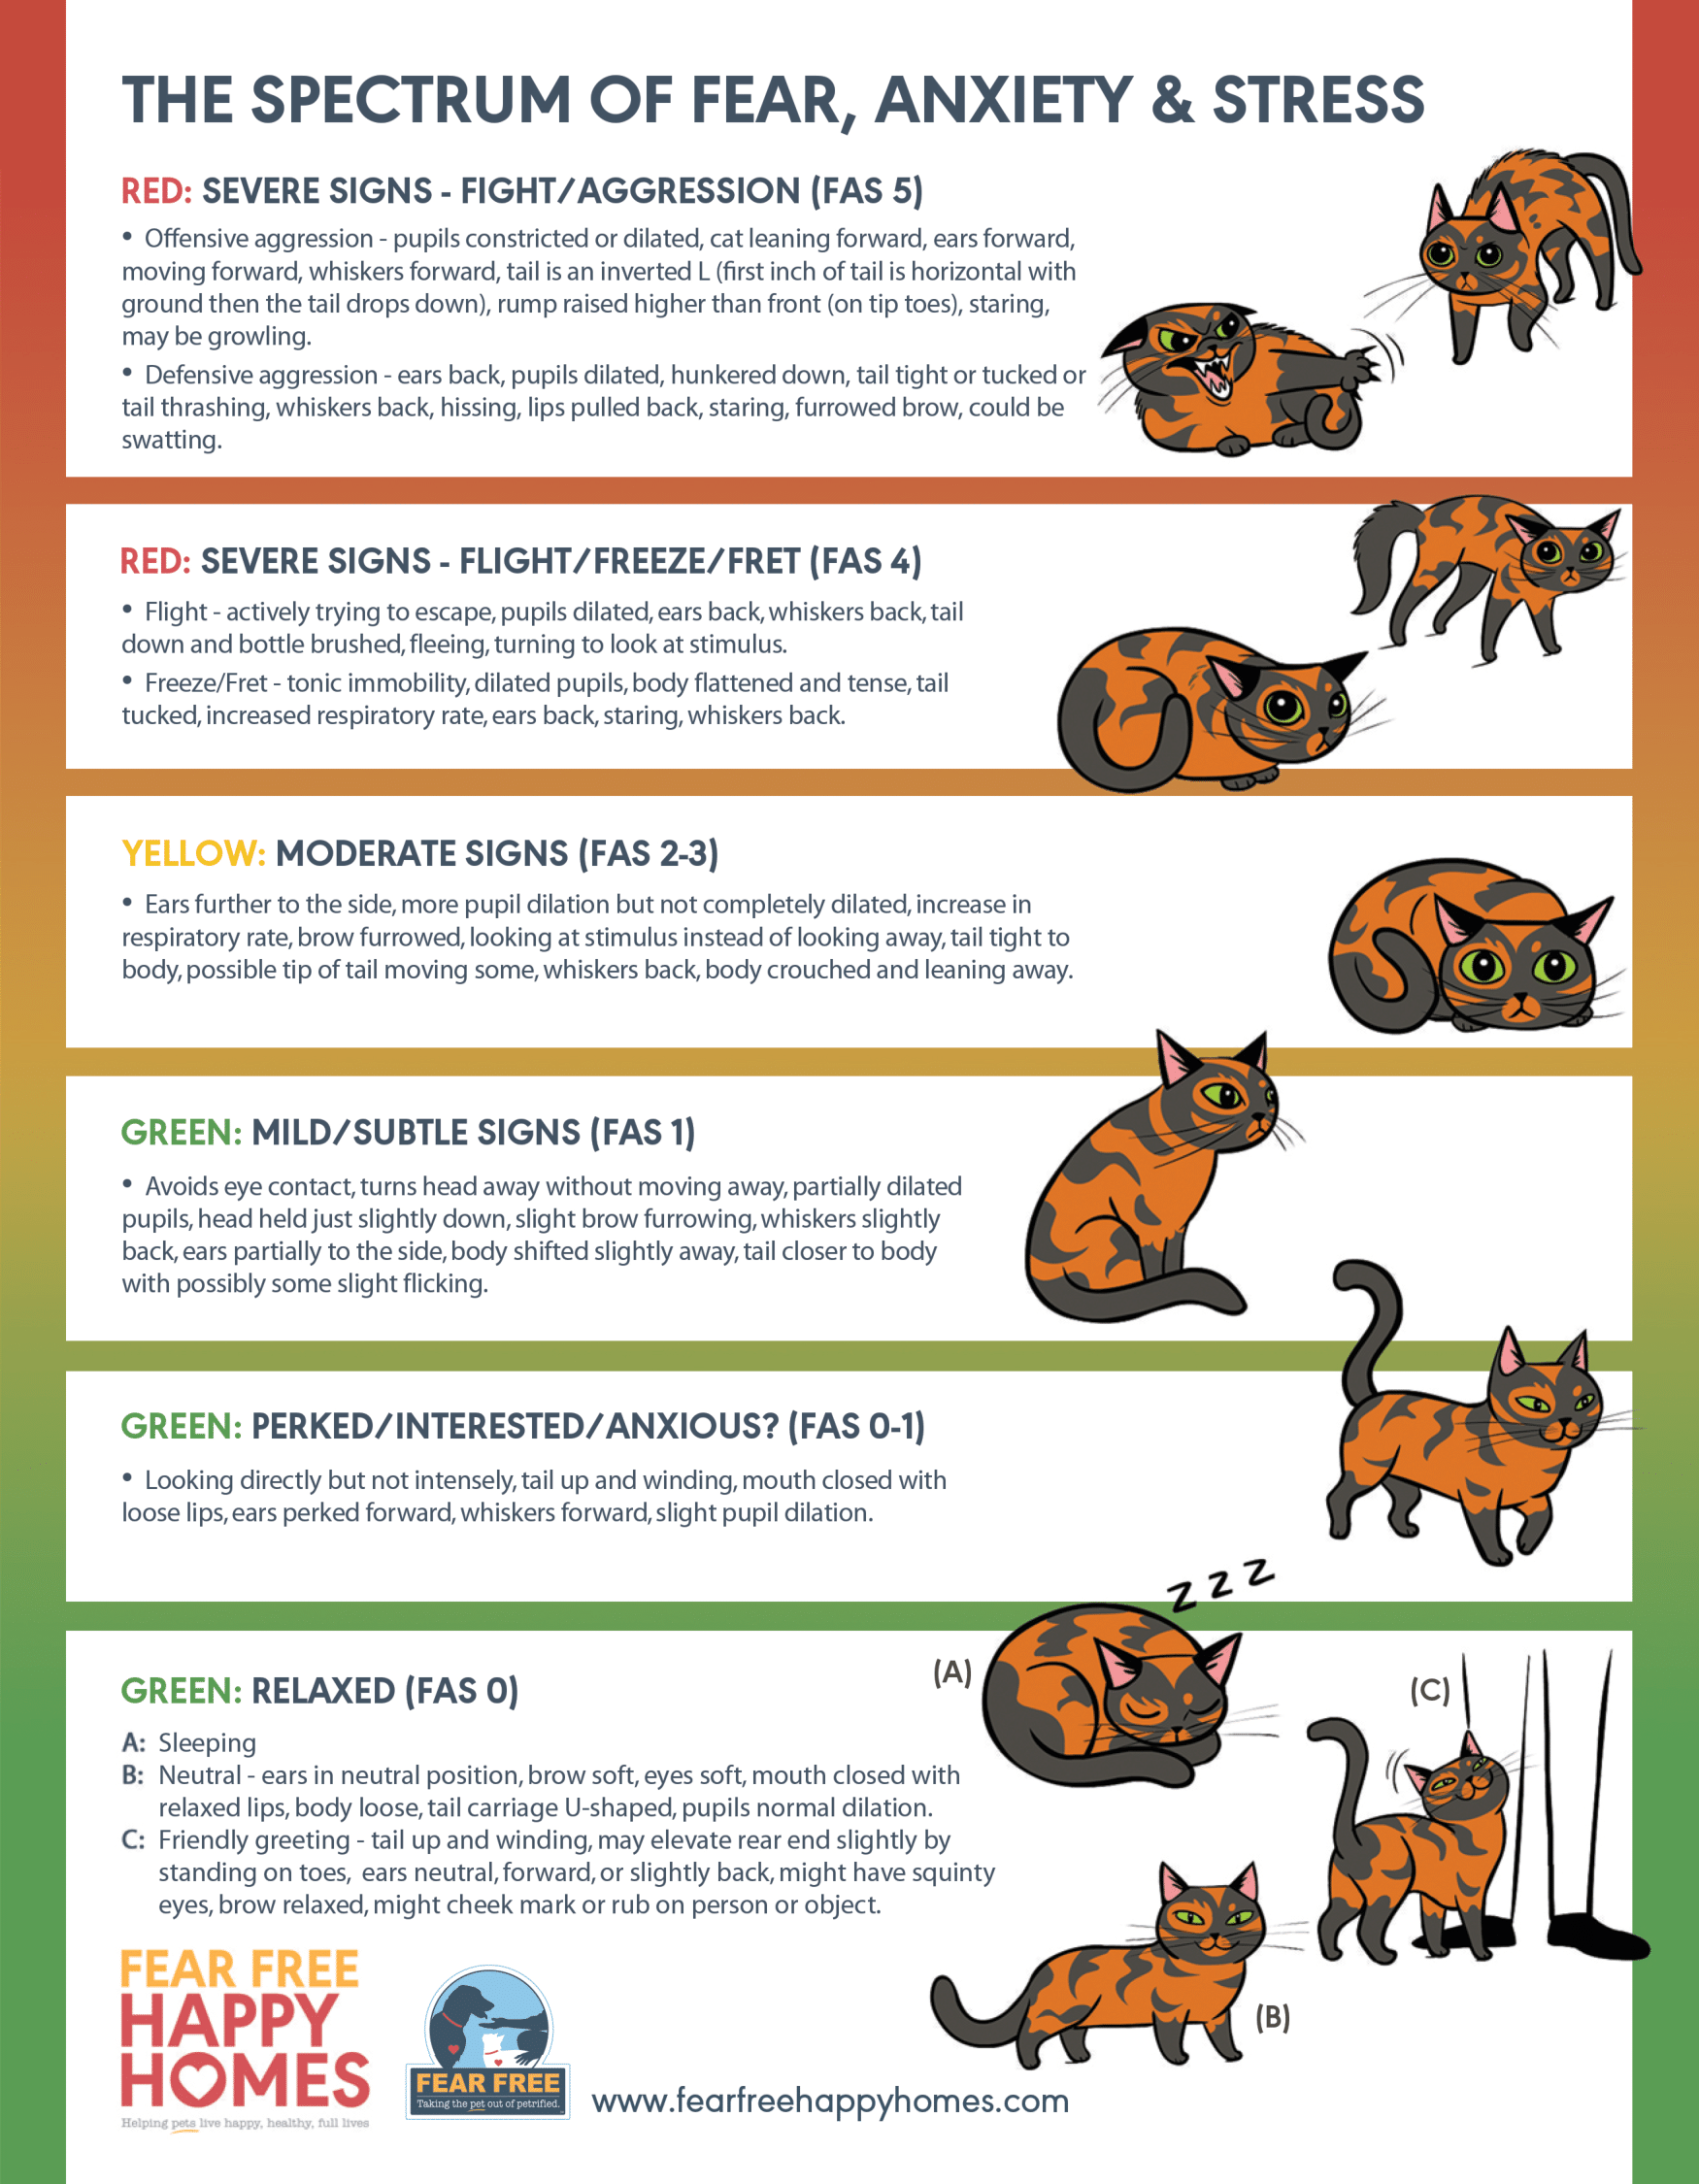 A Cat's Spectrum of Fear, Anxiety, & Stress